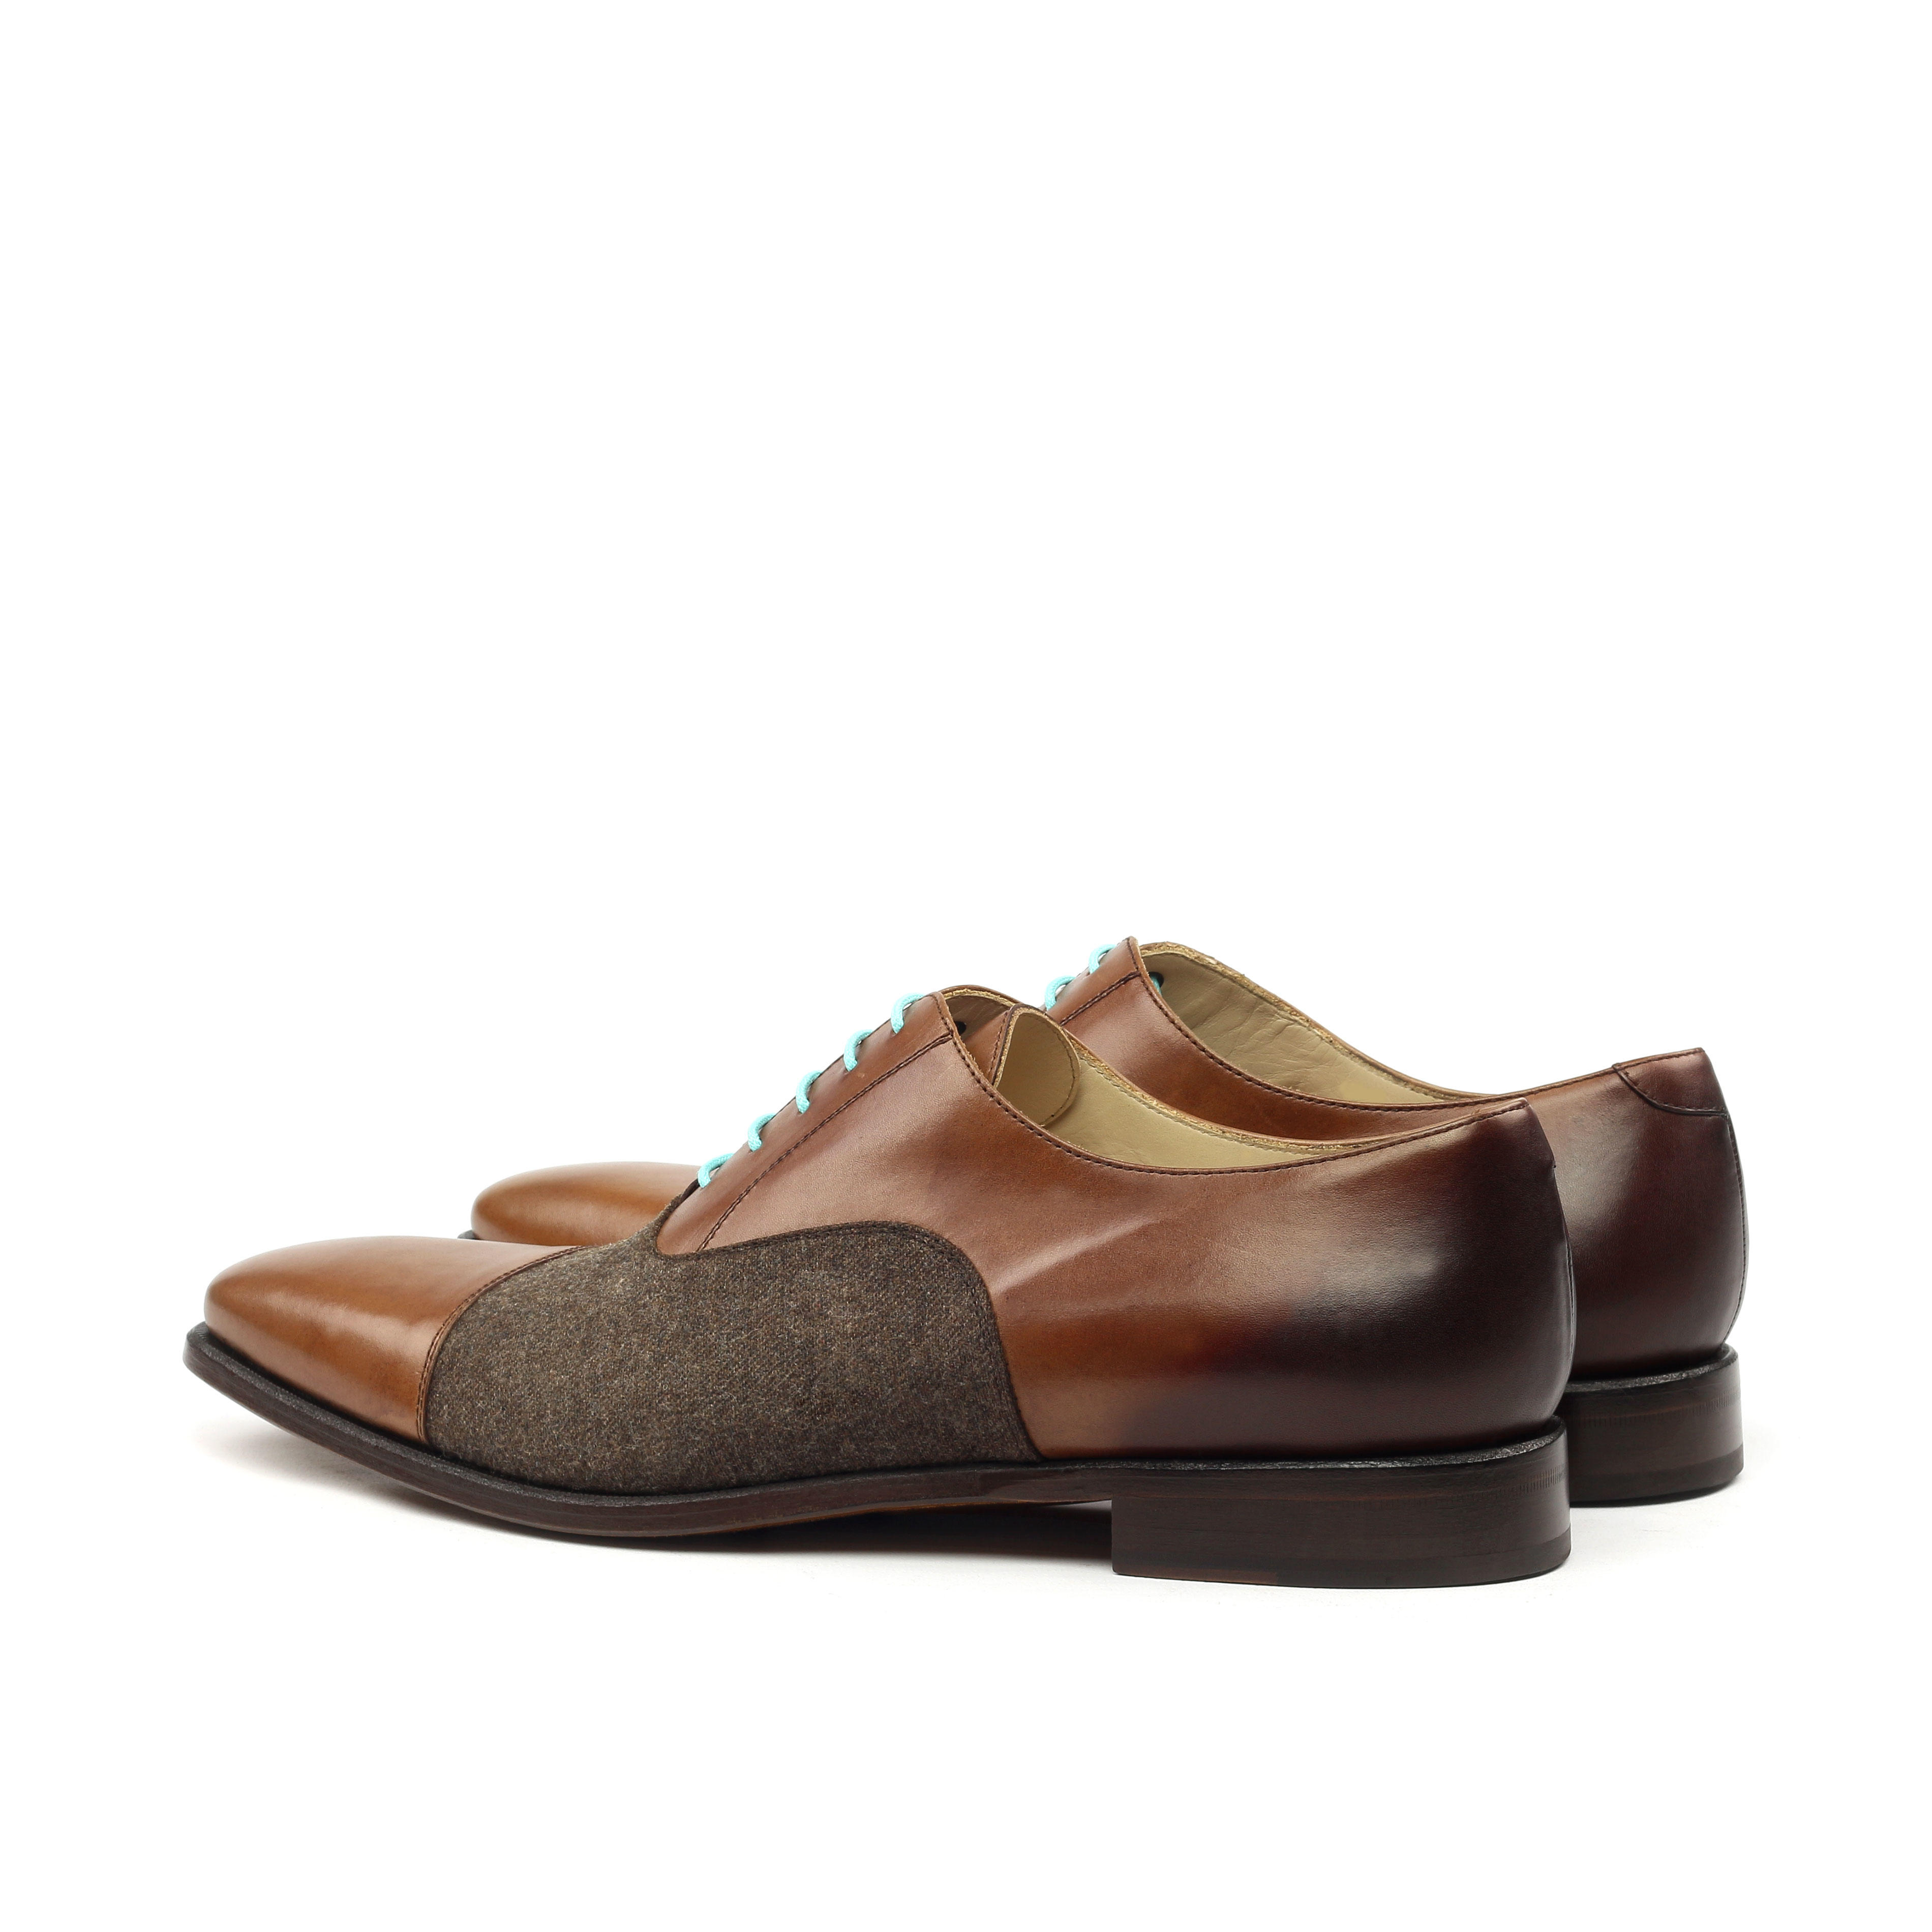 MANOR OF LONDON 'The Oxford' Medium Brown Painted Calfskin & Flannel Shoe Luxury Custom Initials Monogrammed Back Side View